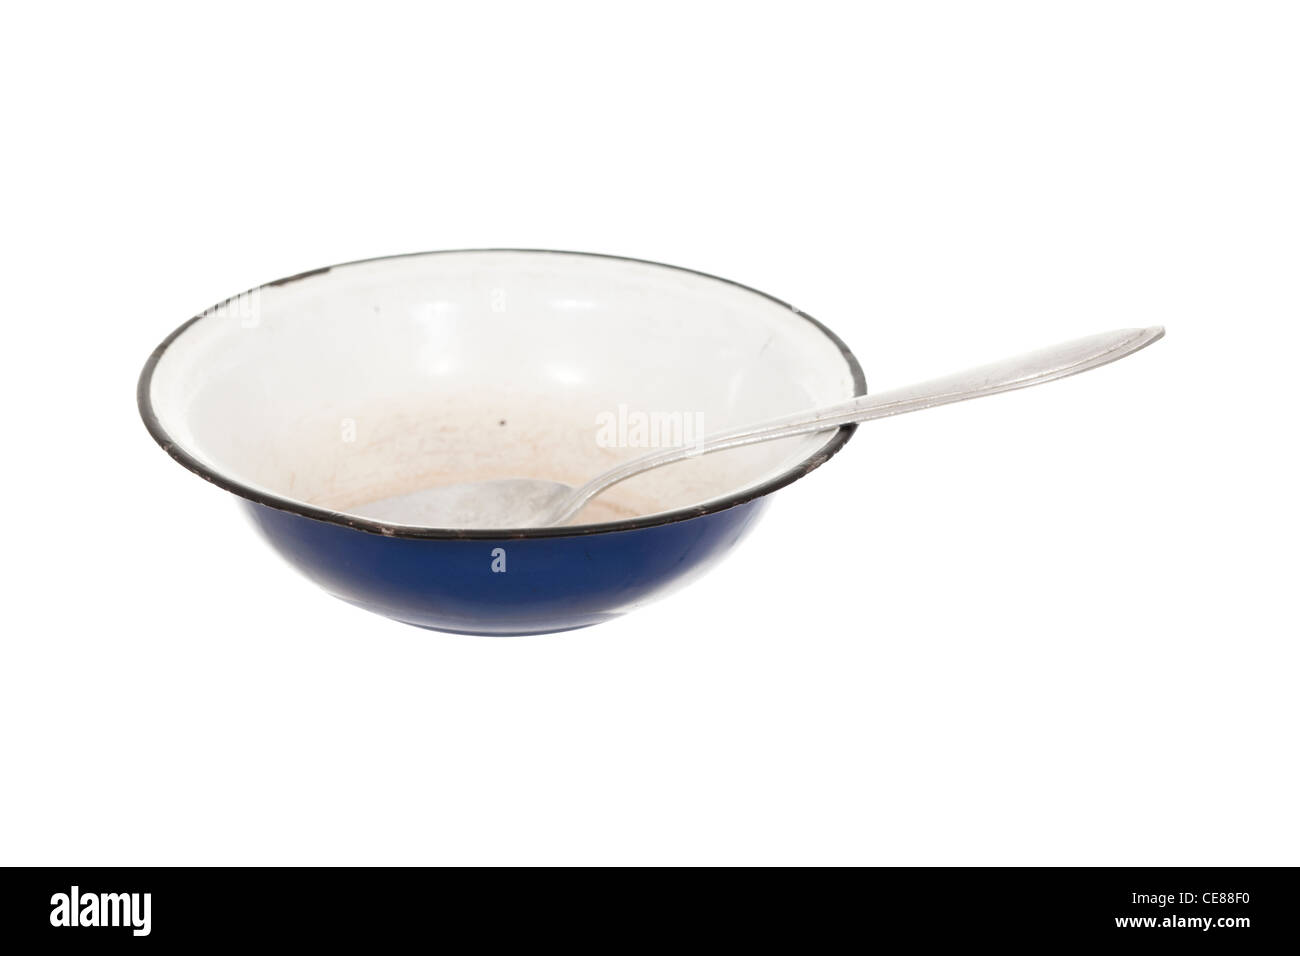 empty bowl with aluminium spoon on white - Stock Image